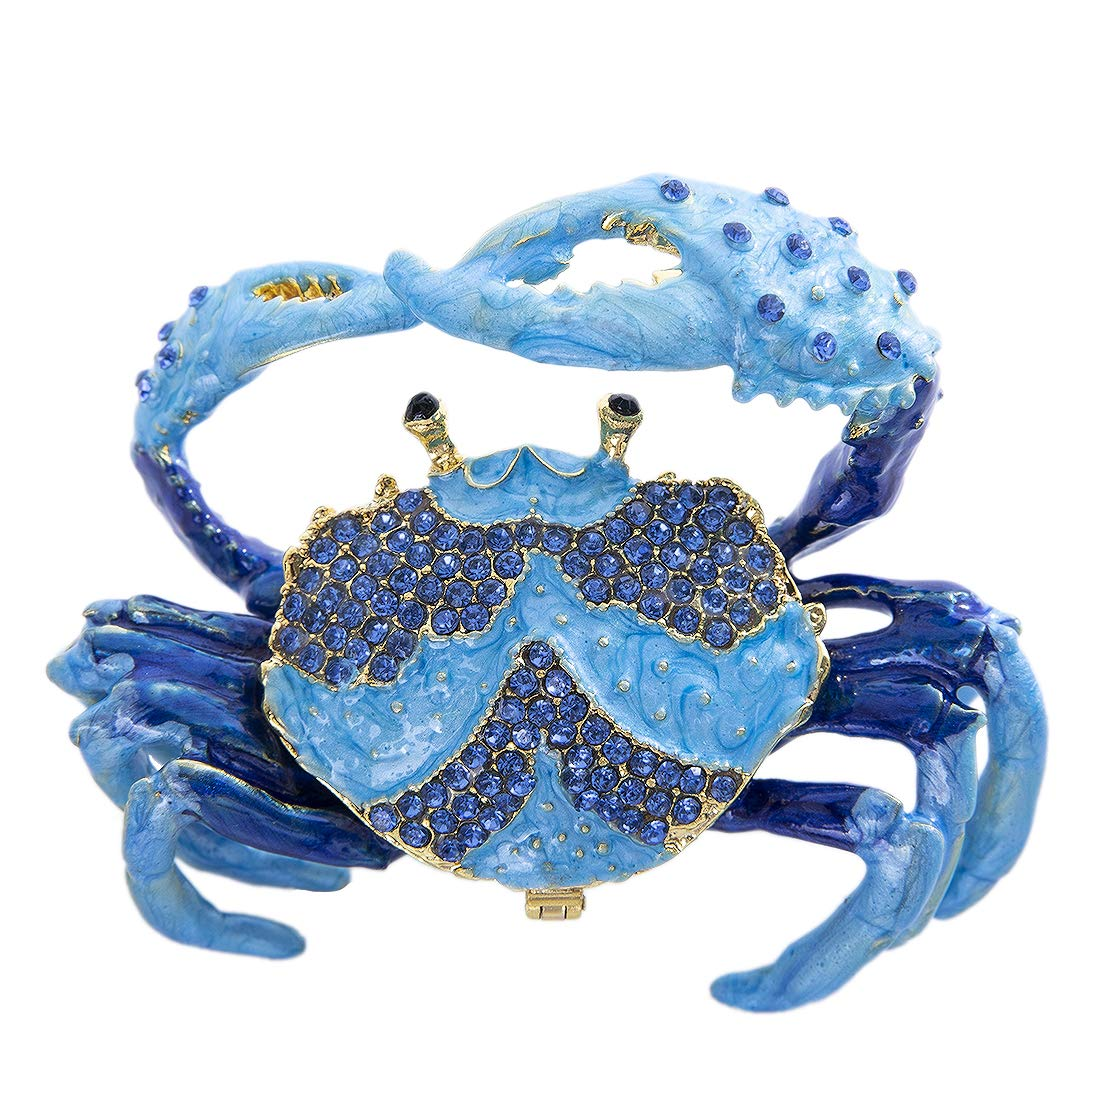 Image of Sparkling Blue Crab Jeweled Box - See More